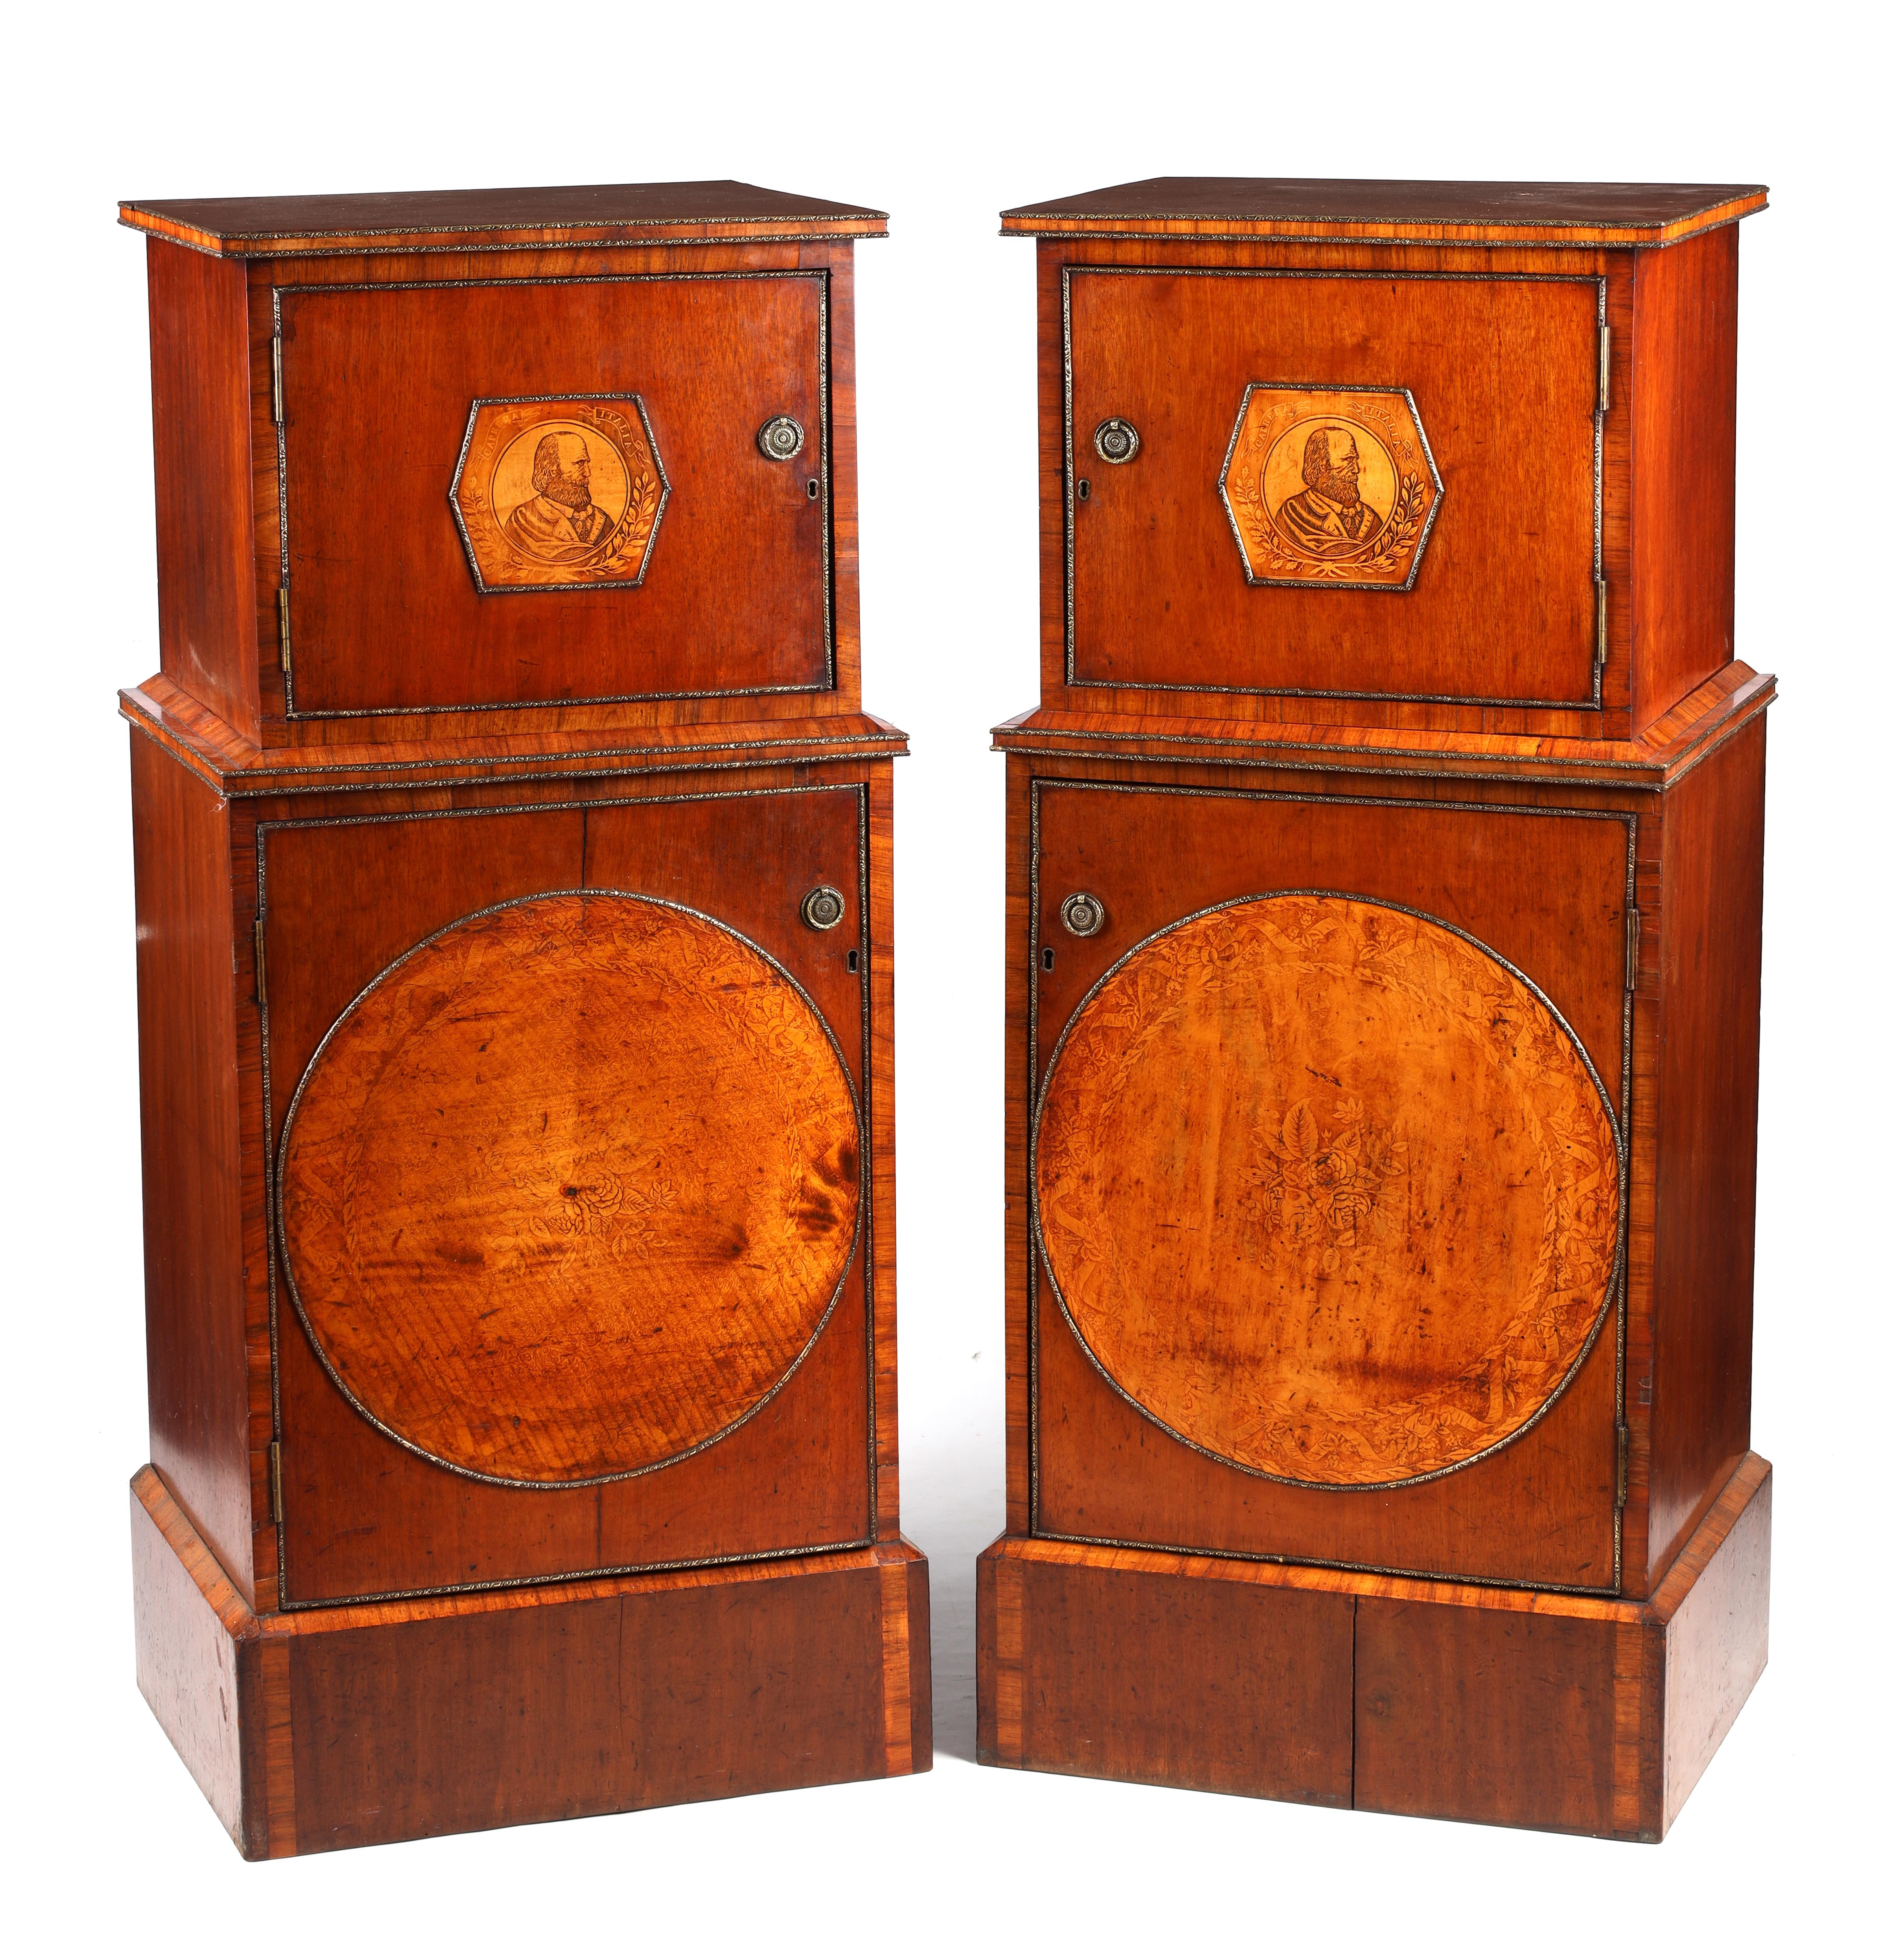 A LARGE PAIR OF GEORGE III KINGWOOD BANDED MAHOGANY PEDESTALS with unusual pen work panels depicting - Image 2 of 11